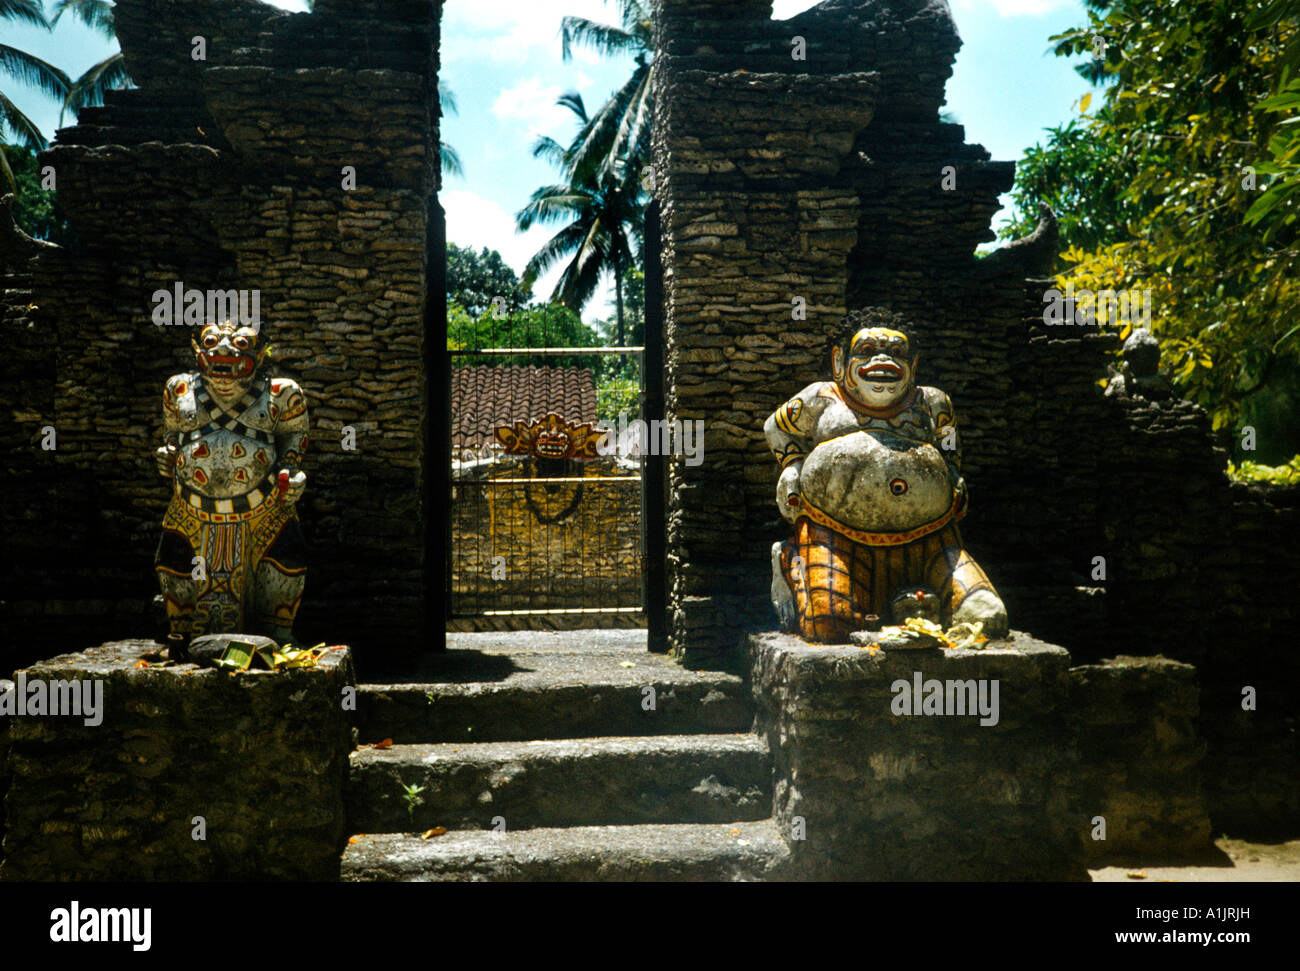 Bali Indonesia Temple Gods Outside Of Temple - Stock Image